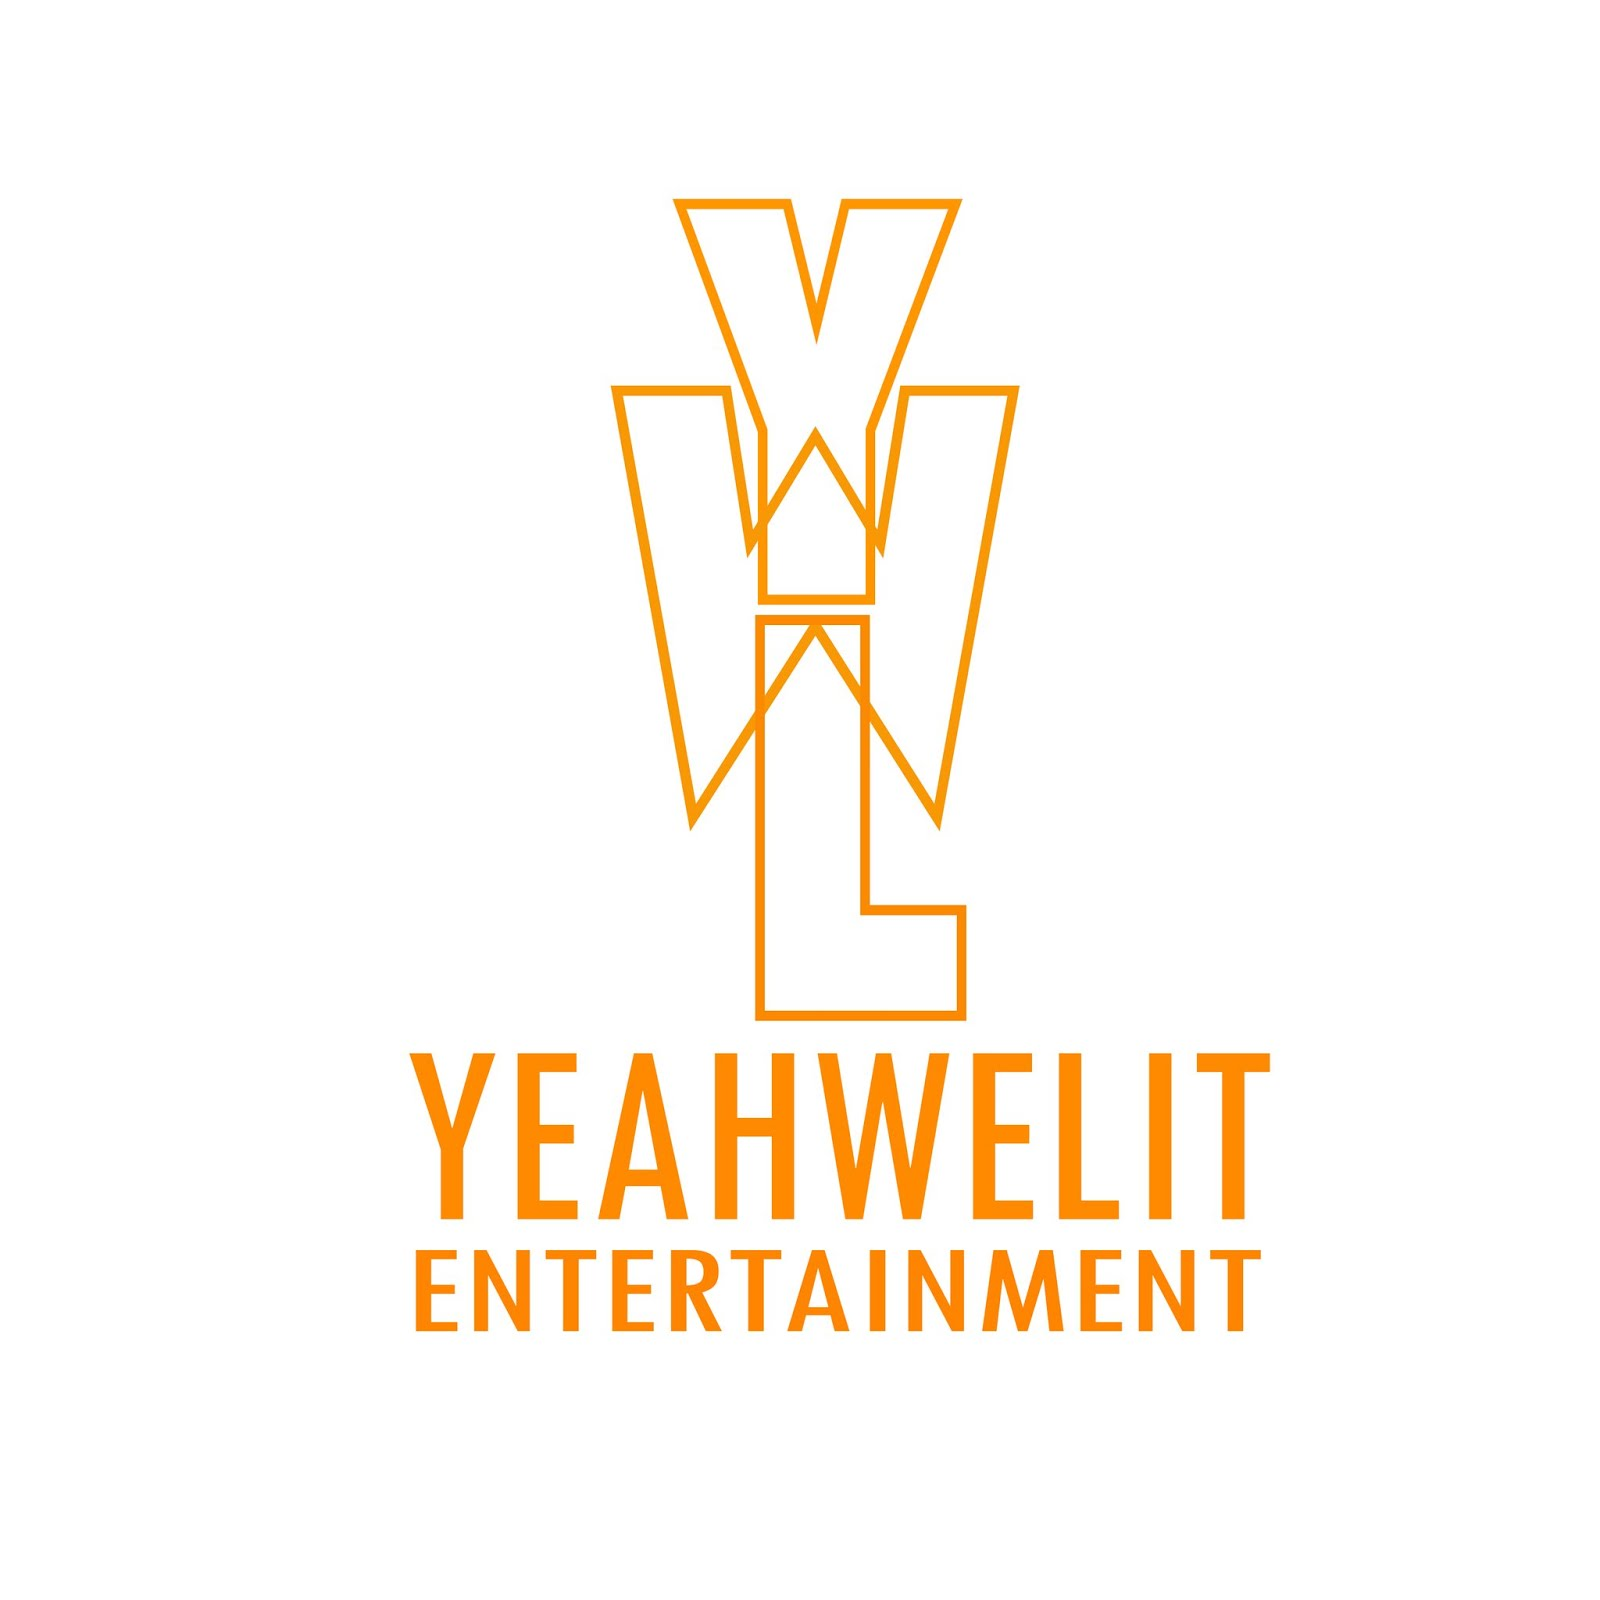 YeahWeLit Entertainment